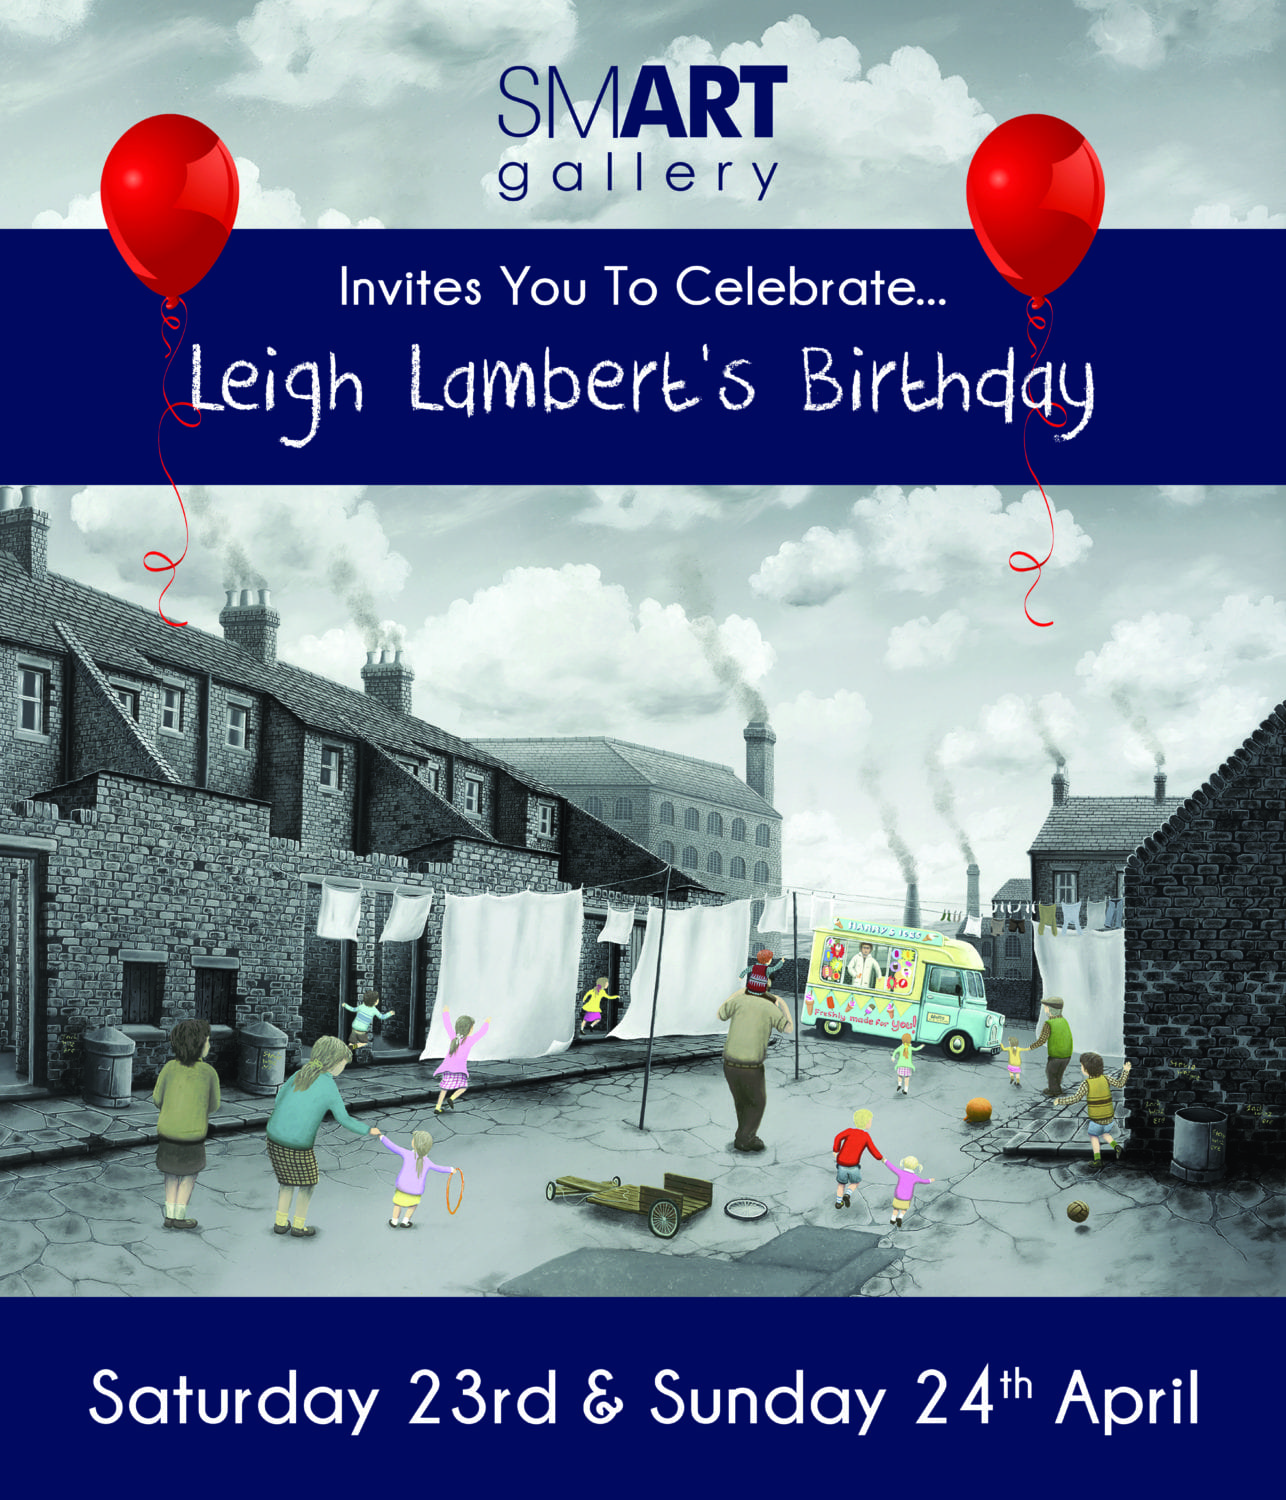 Leigh Lambert Exhibition | Saturday 23rd & Sunday 24th April